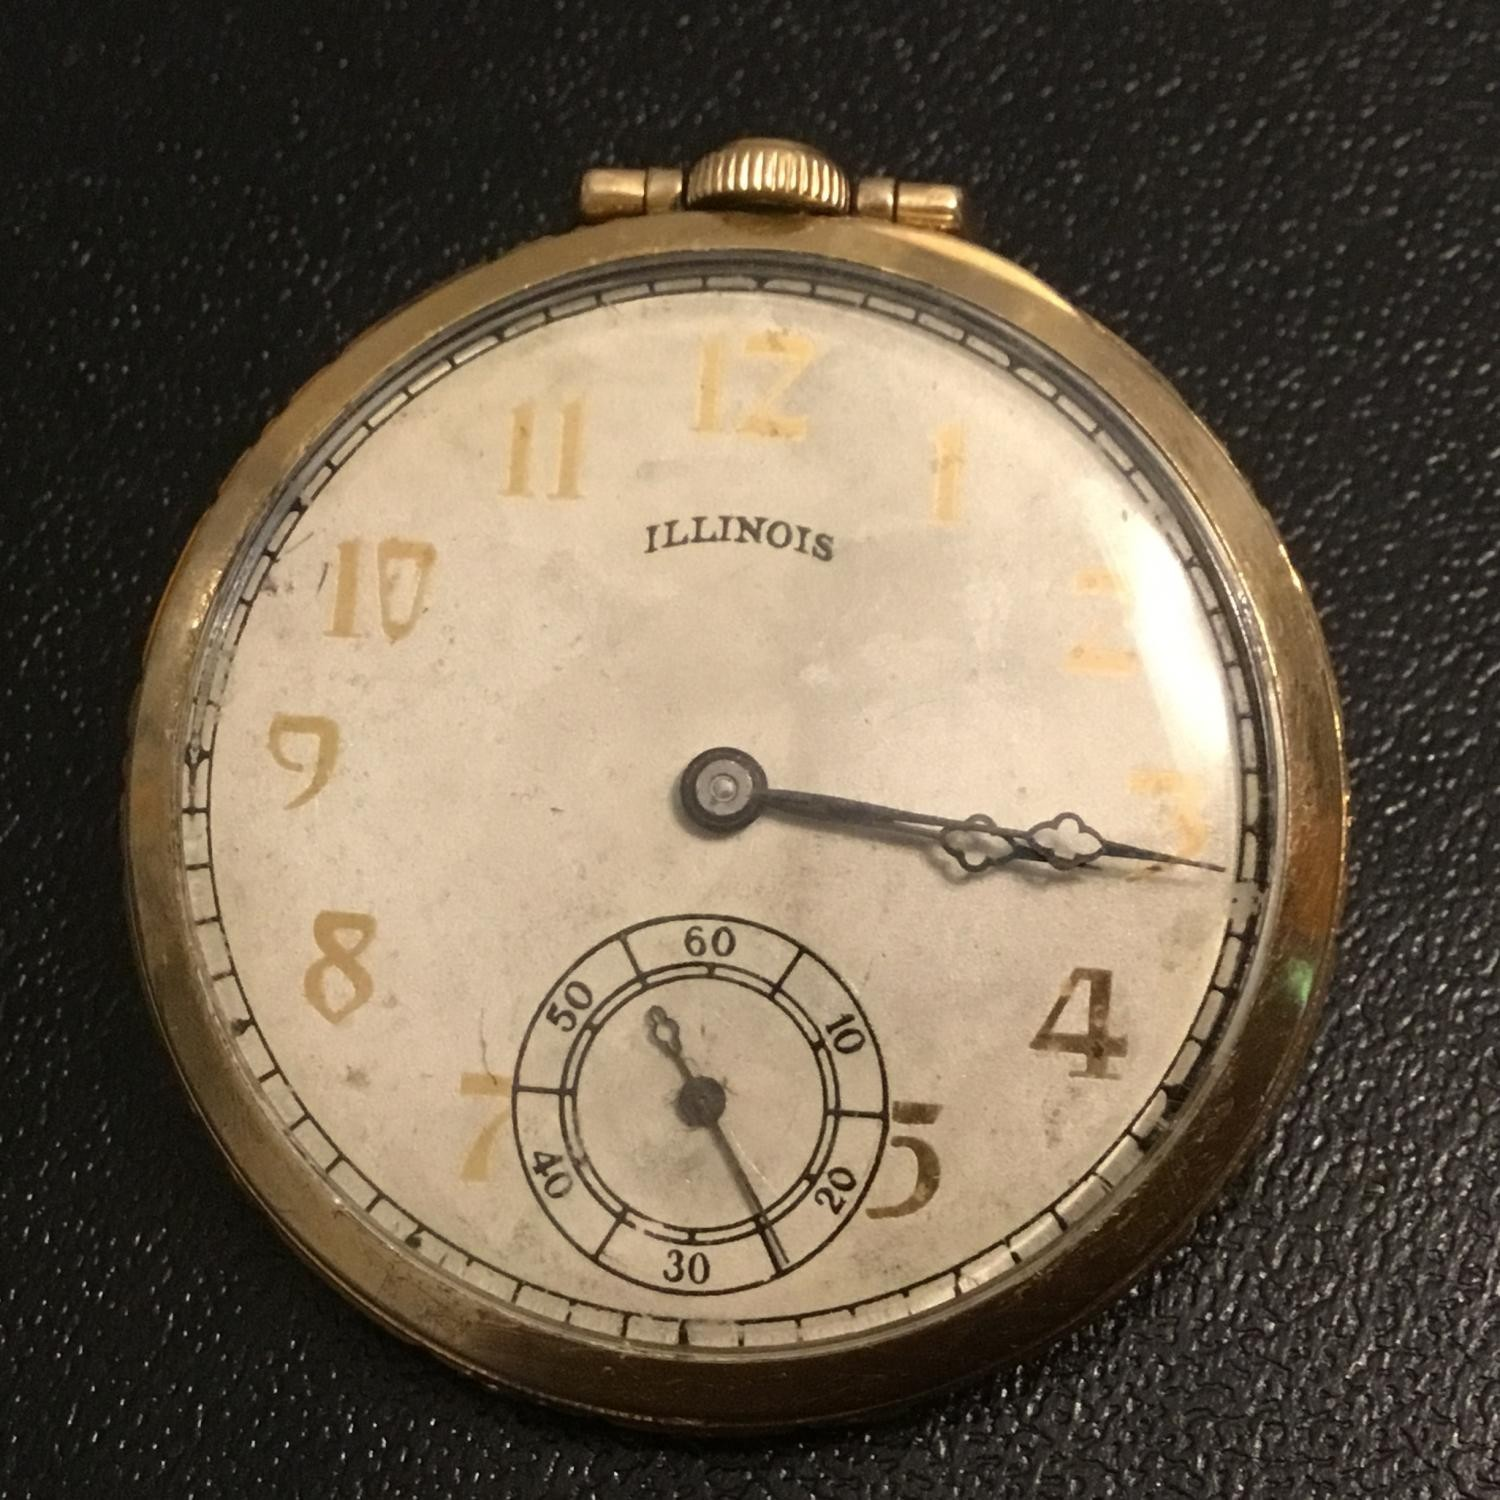 Image of Illinois 522 #4922051 Dial